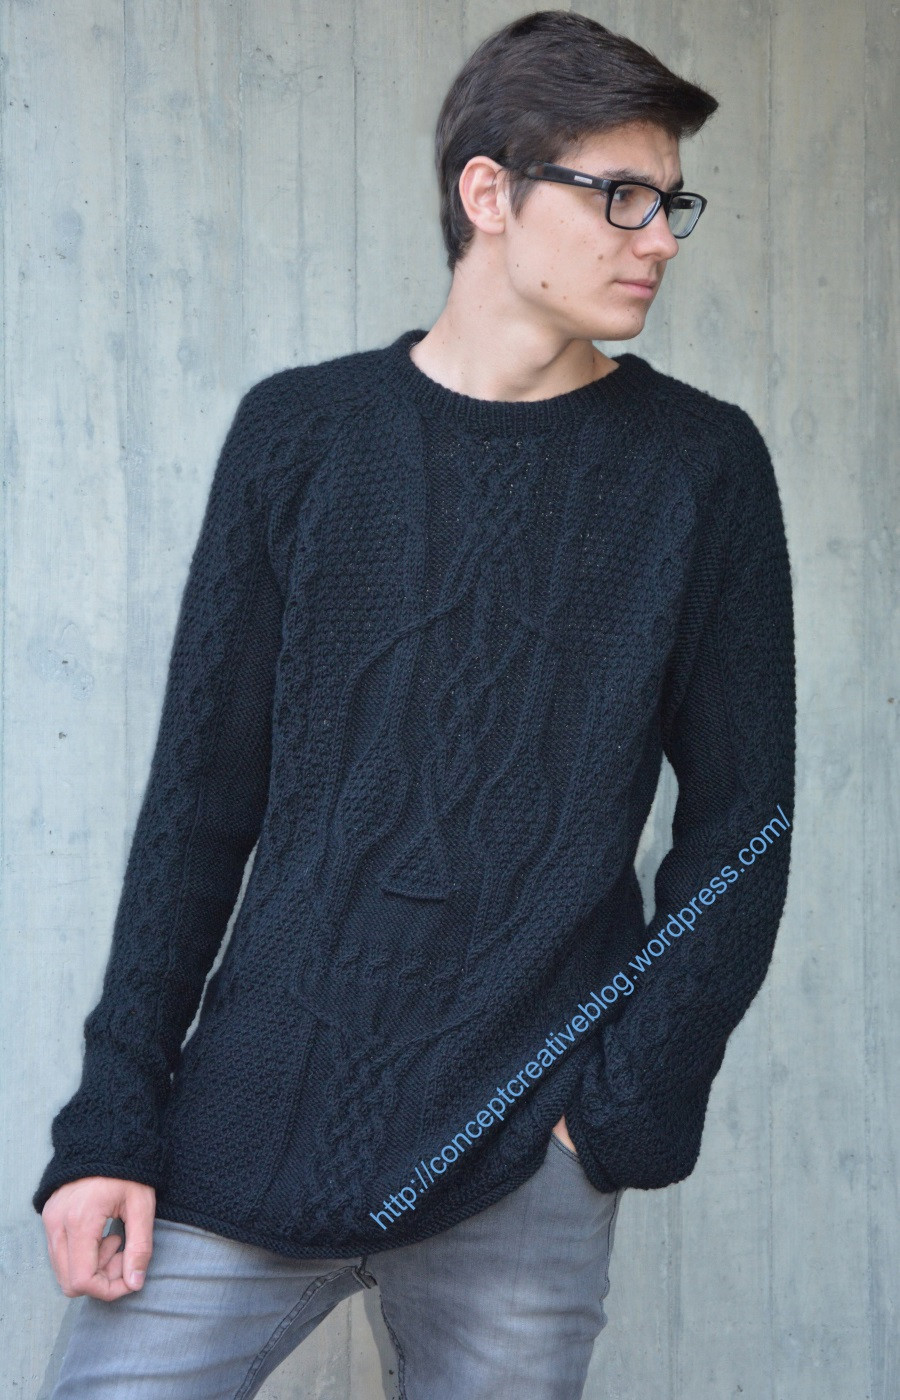 Awesome Knit Cable Pullover with Skull Pattern Free Diagram Cable Knitting Patterns Of Beautiful 41 Models Cable Knitting Patterns